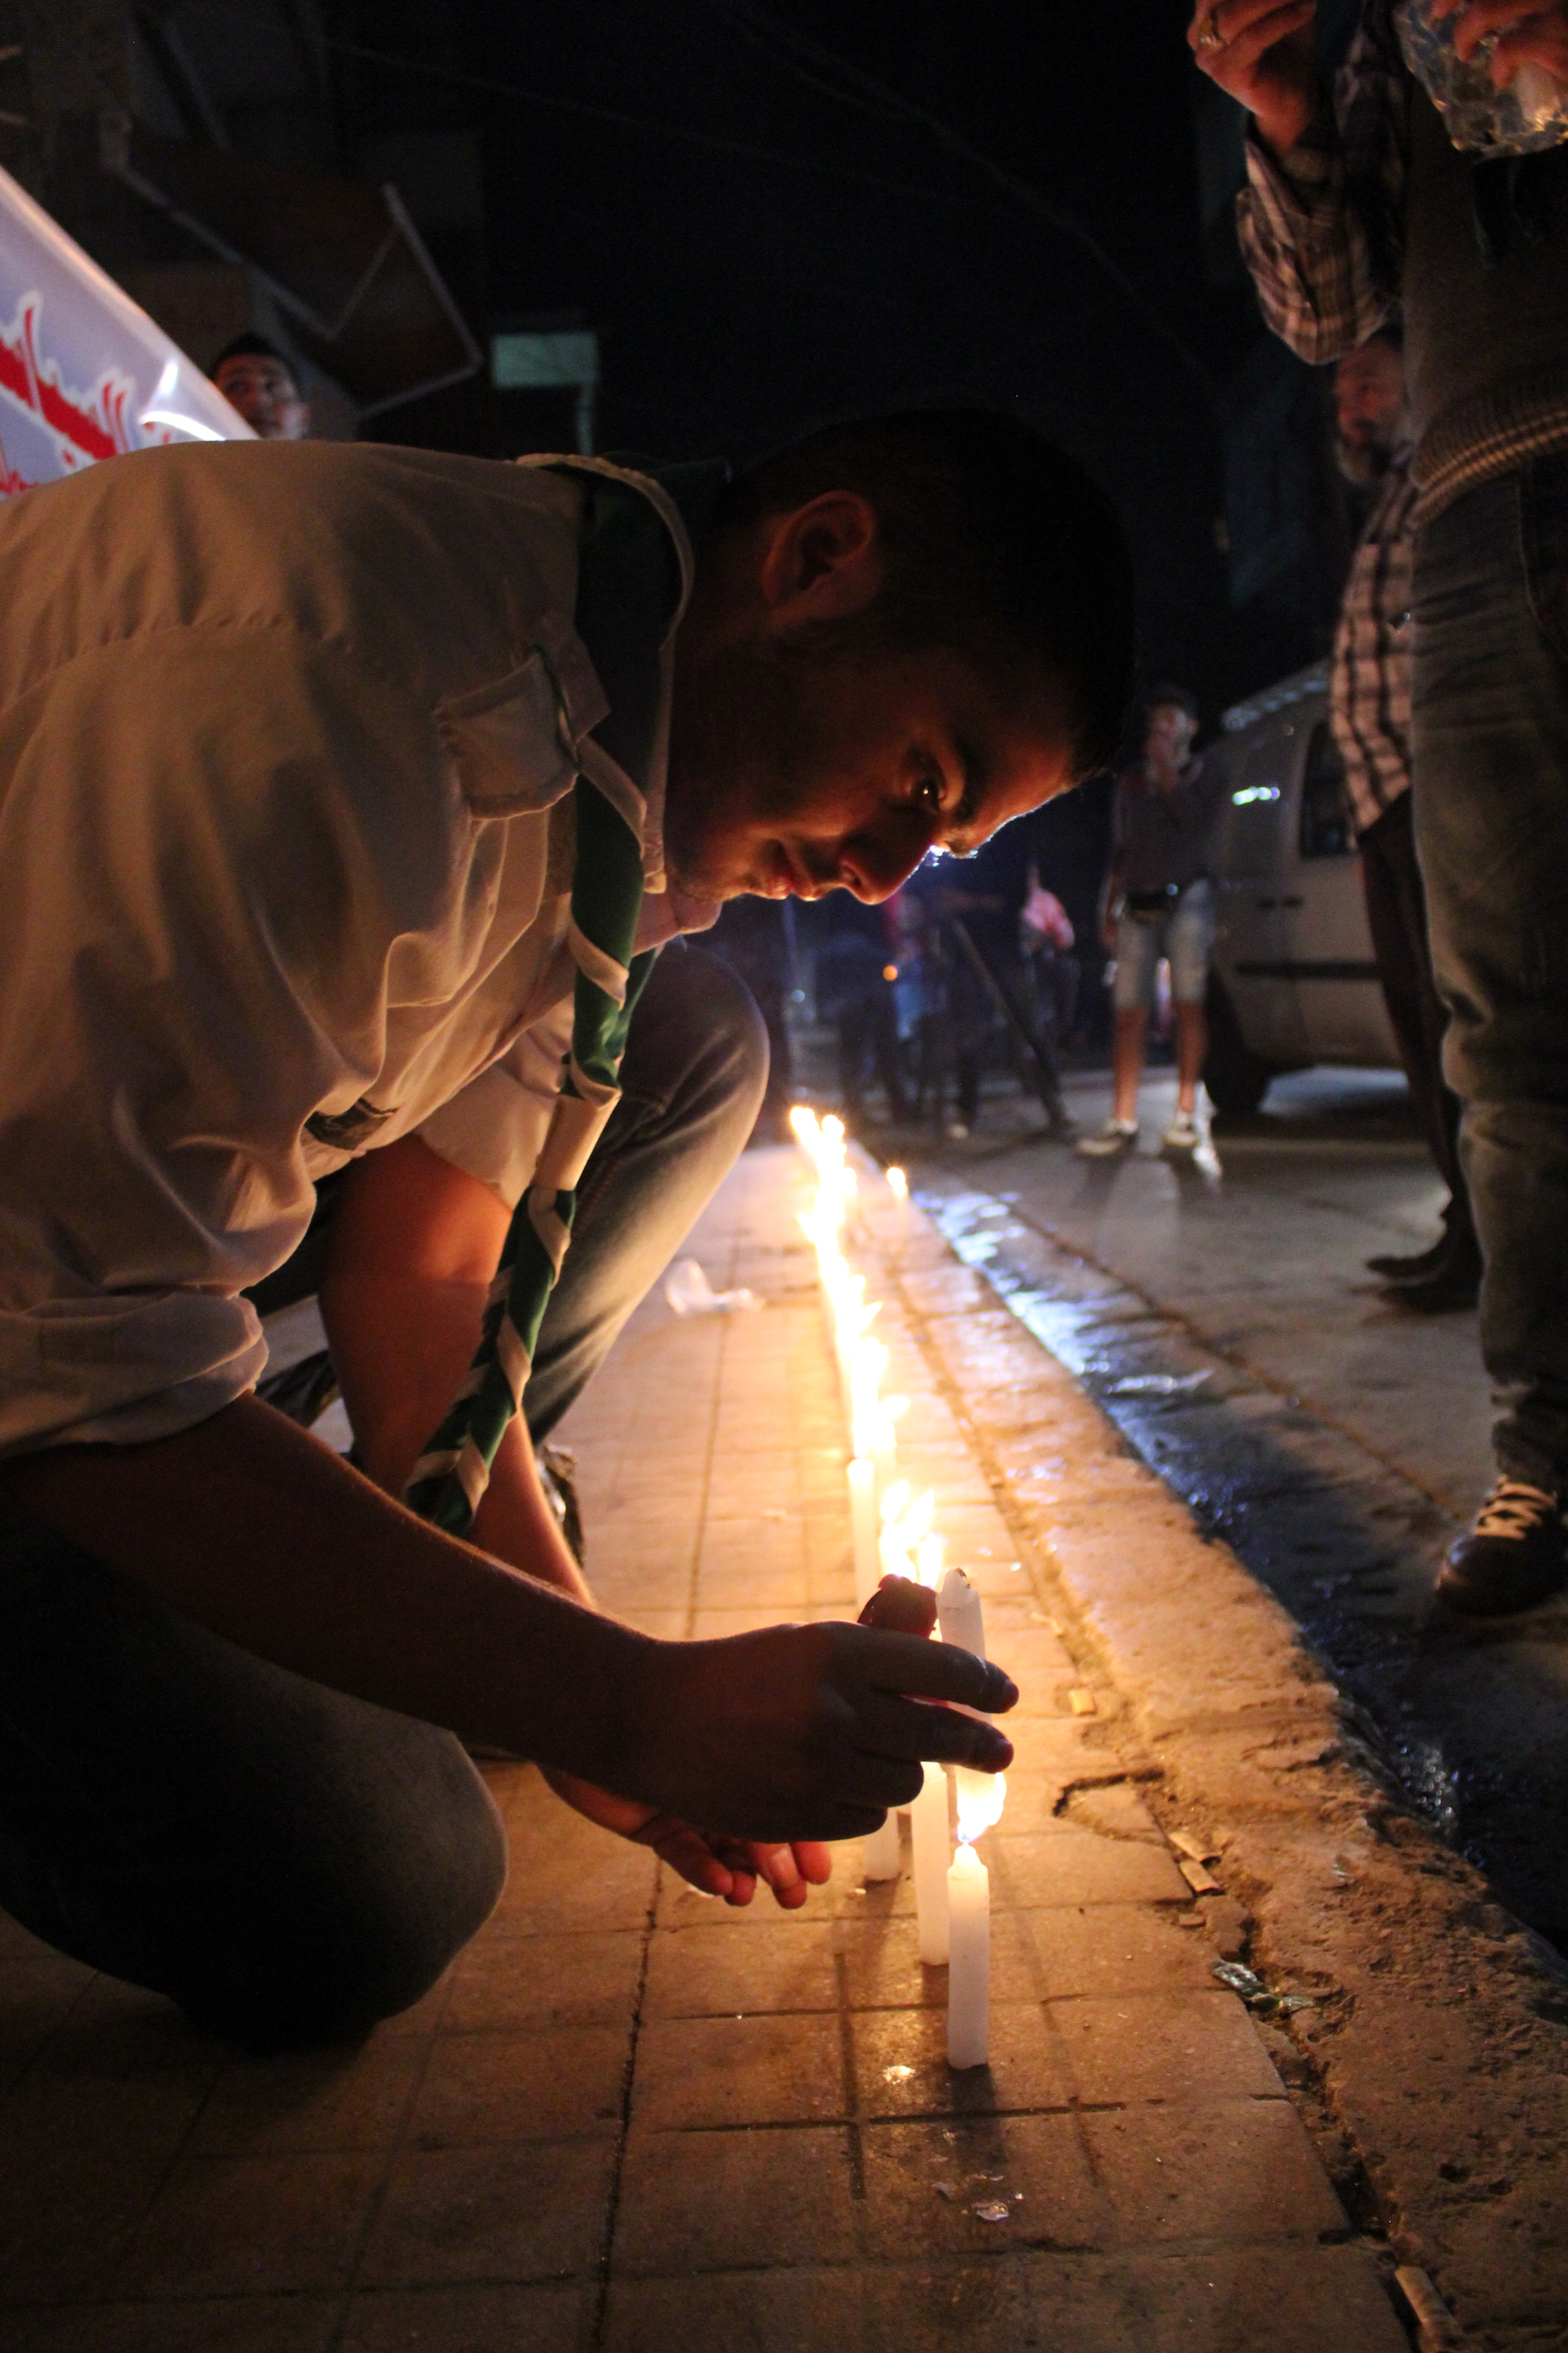 Some people in Beirut say the outpouring of emotion toward the French victims makes them feel forgotten. The same people point out that they, too, were appalled by the horrors in Paris, Nov. 12, 2015. (Sama Dizayee/VOA)